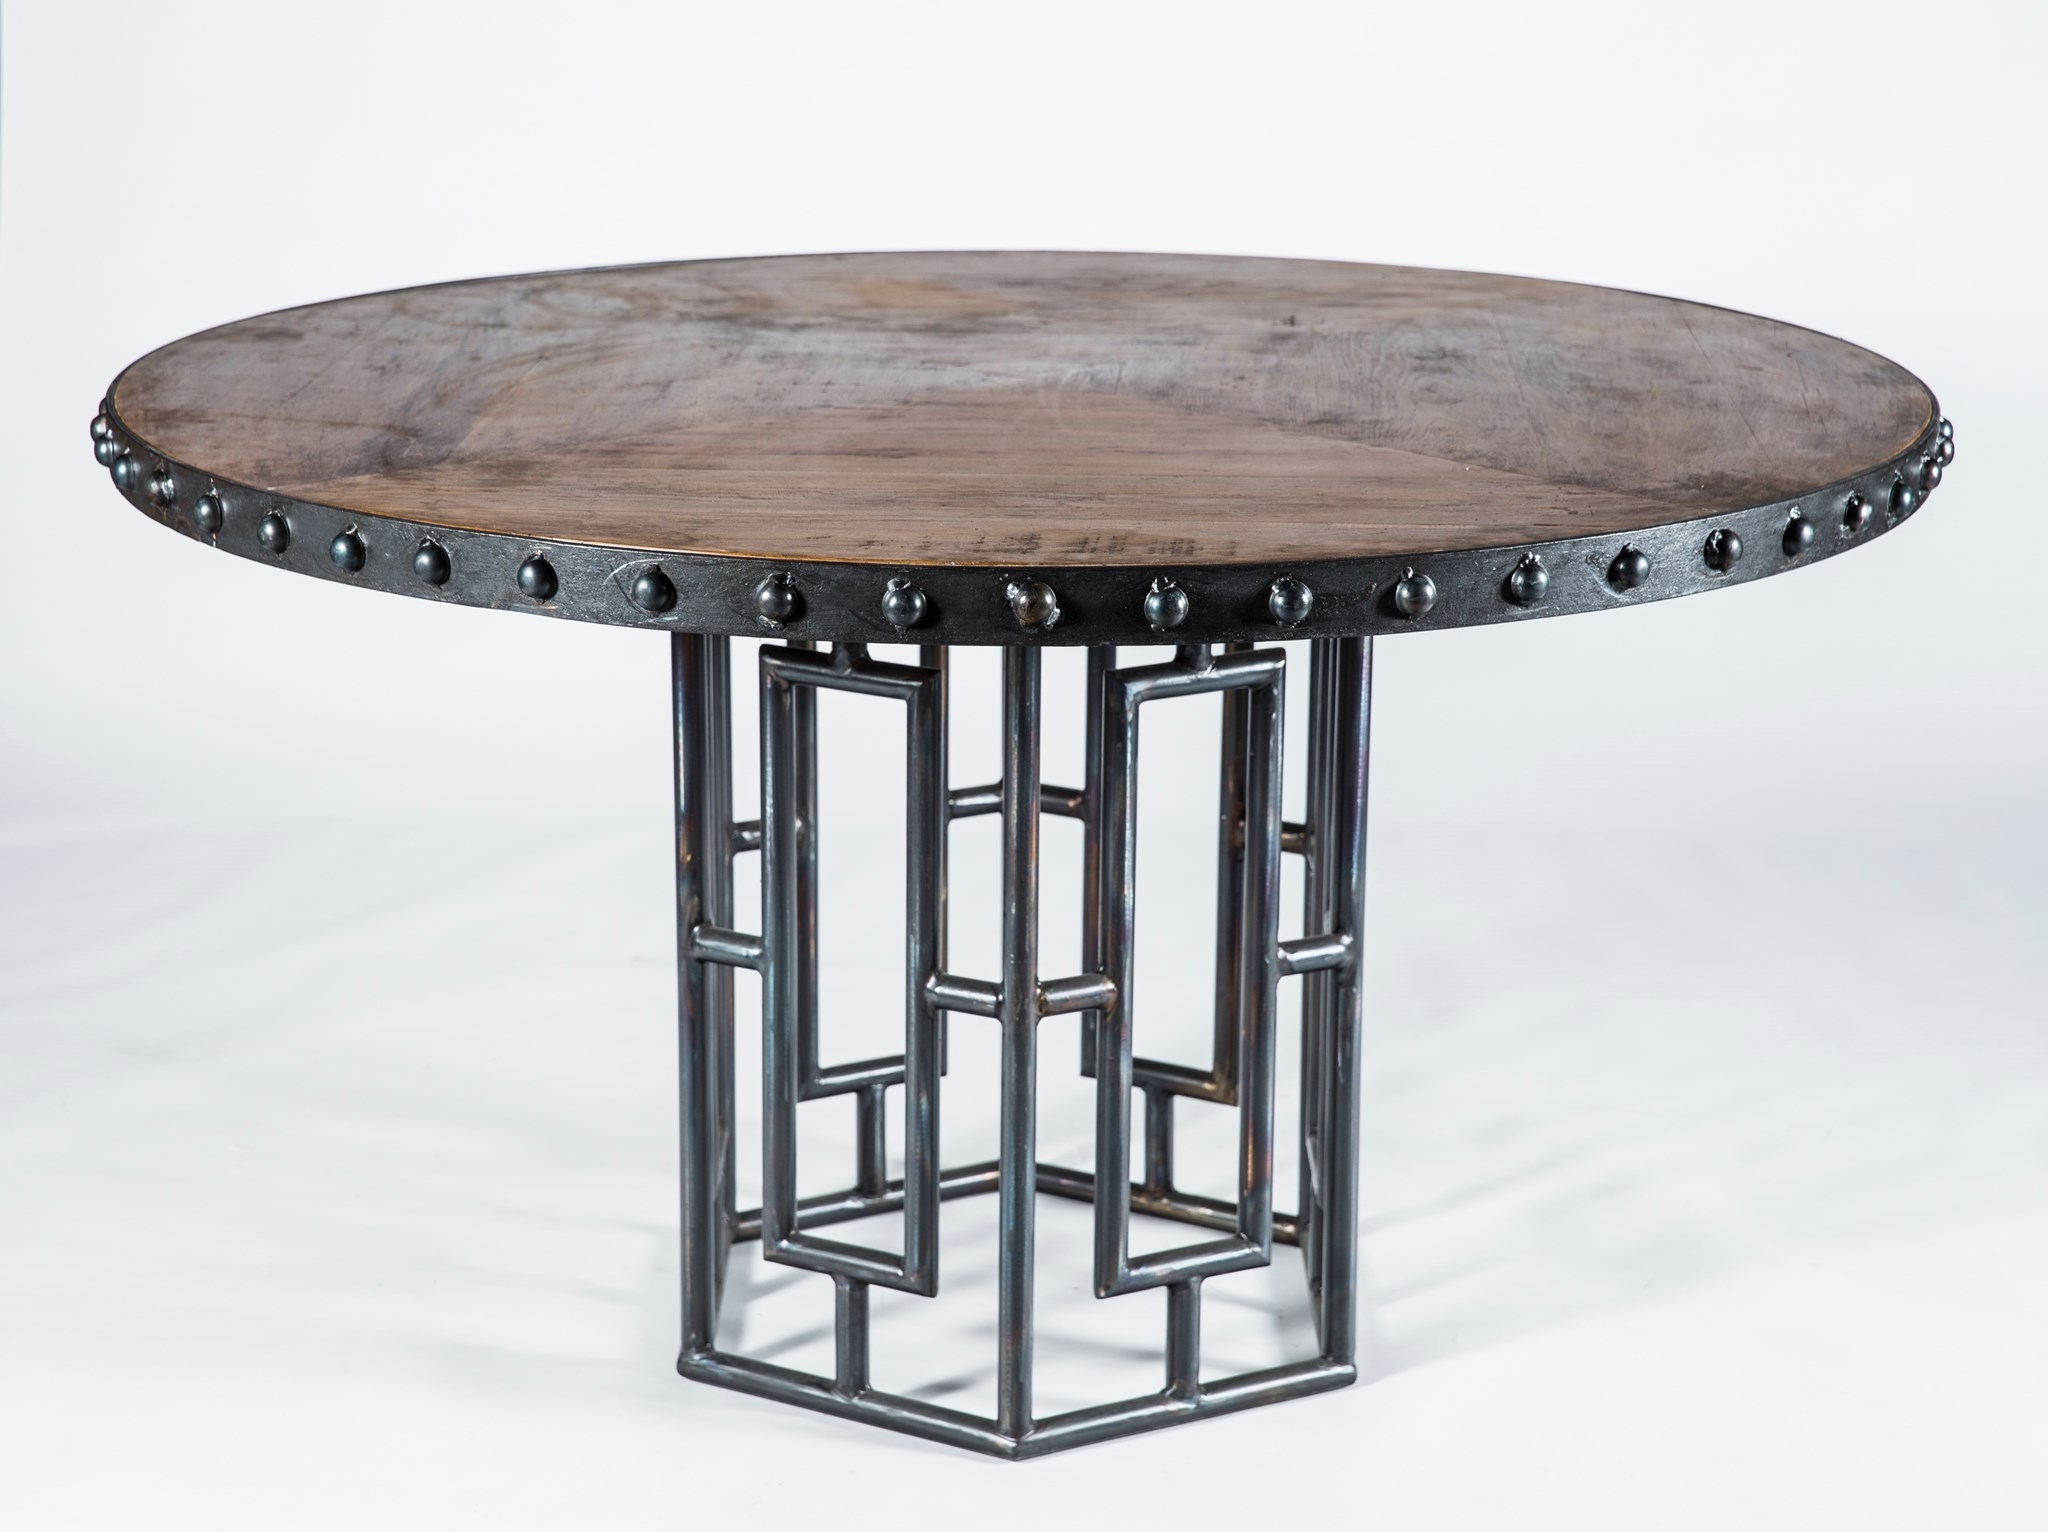 Hudson Round Dining Tables Intended For Most Up To Date Hudson Dining Table With 48 Round Wood Top With Iron Nail Head Edge (View 9 of 25)